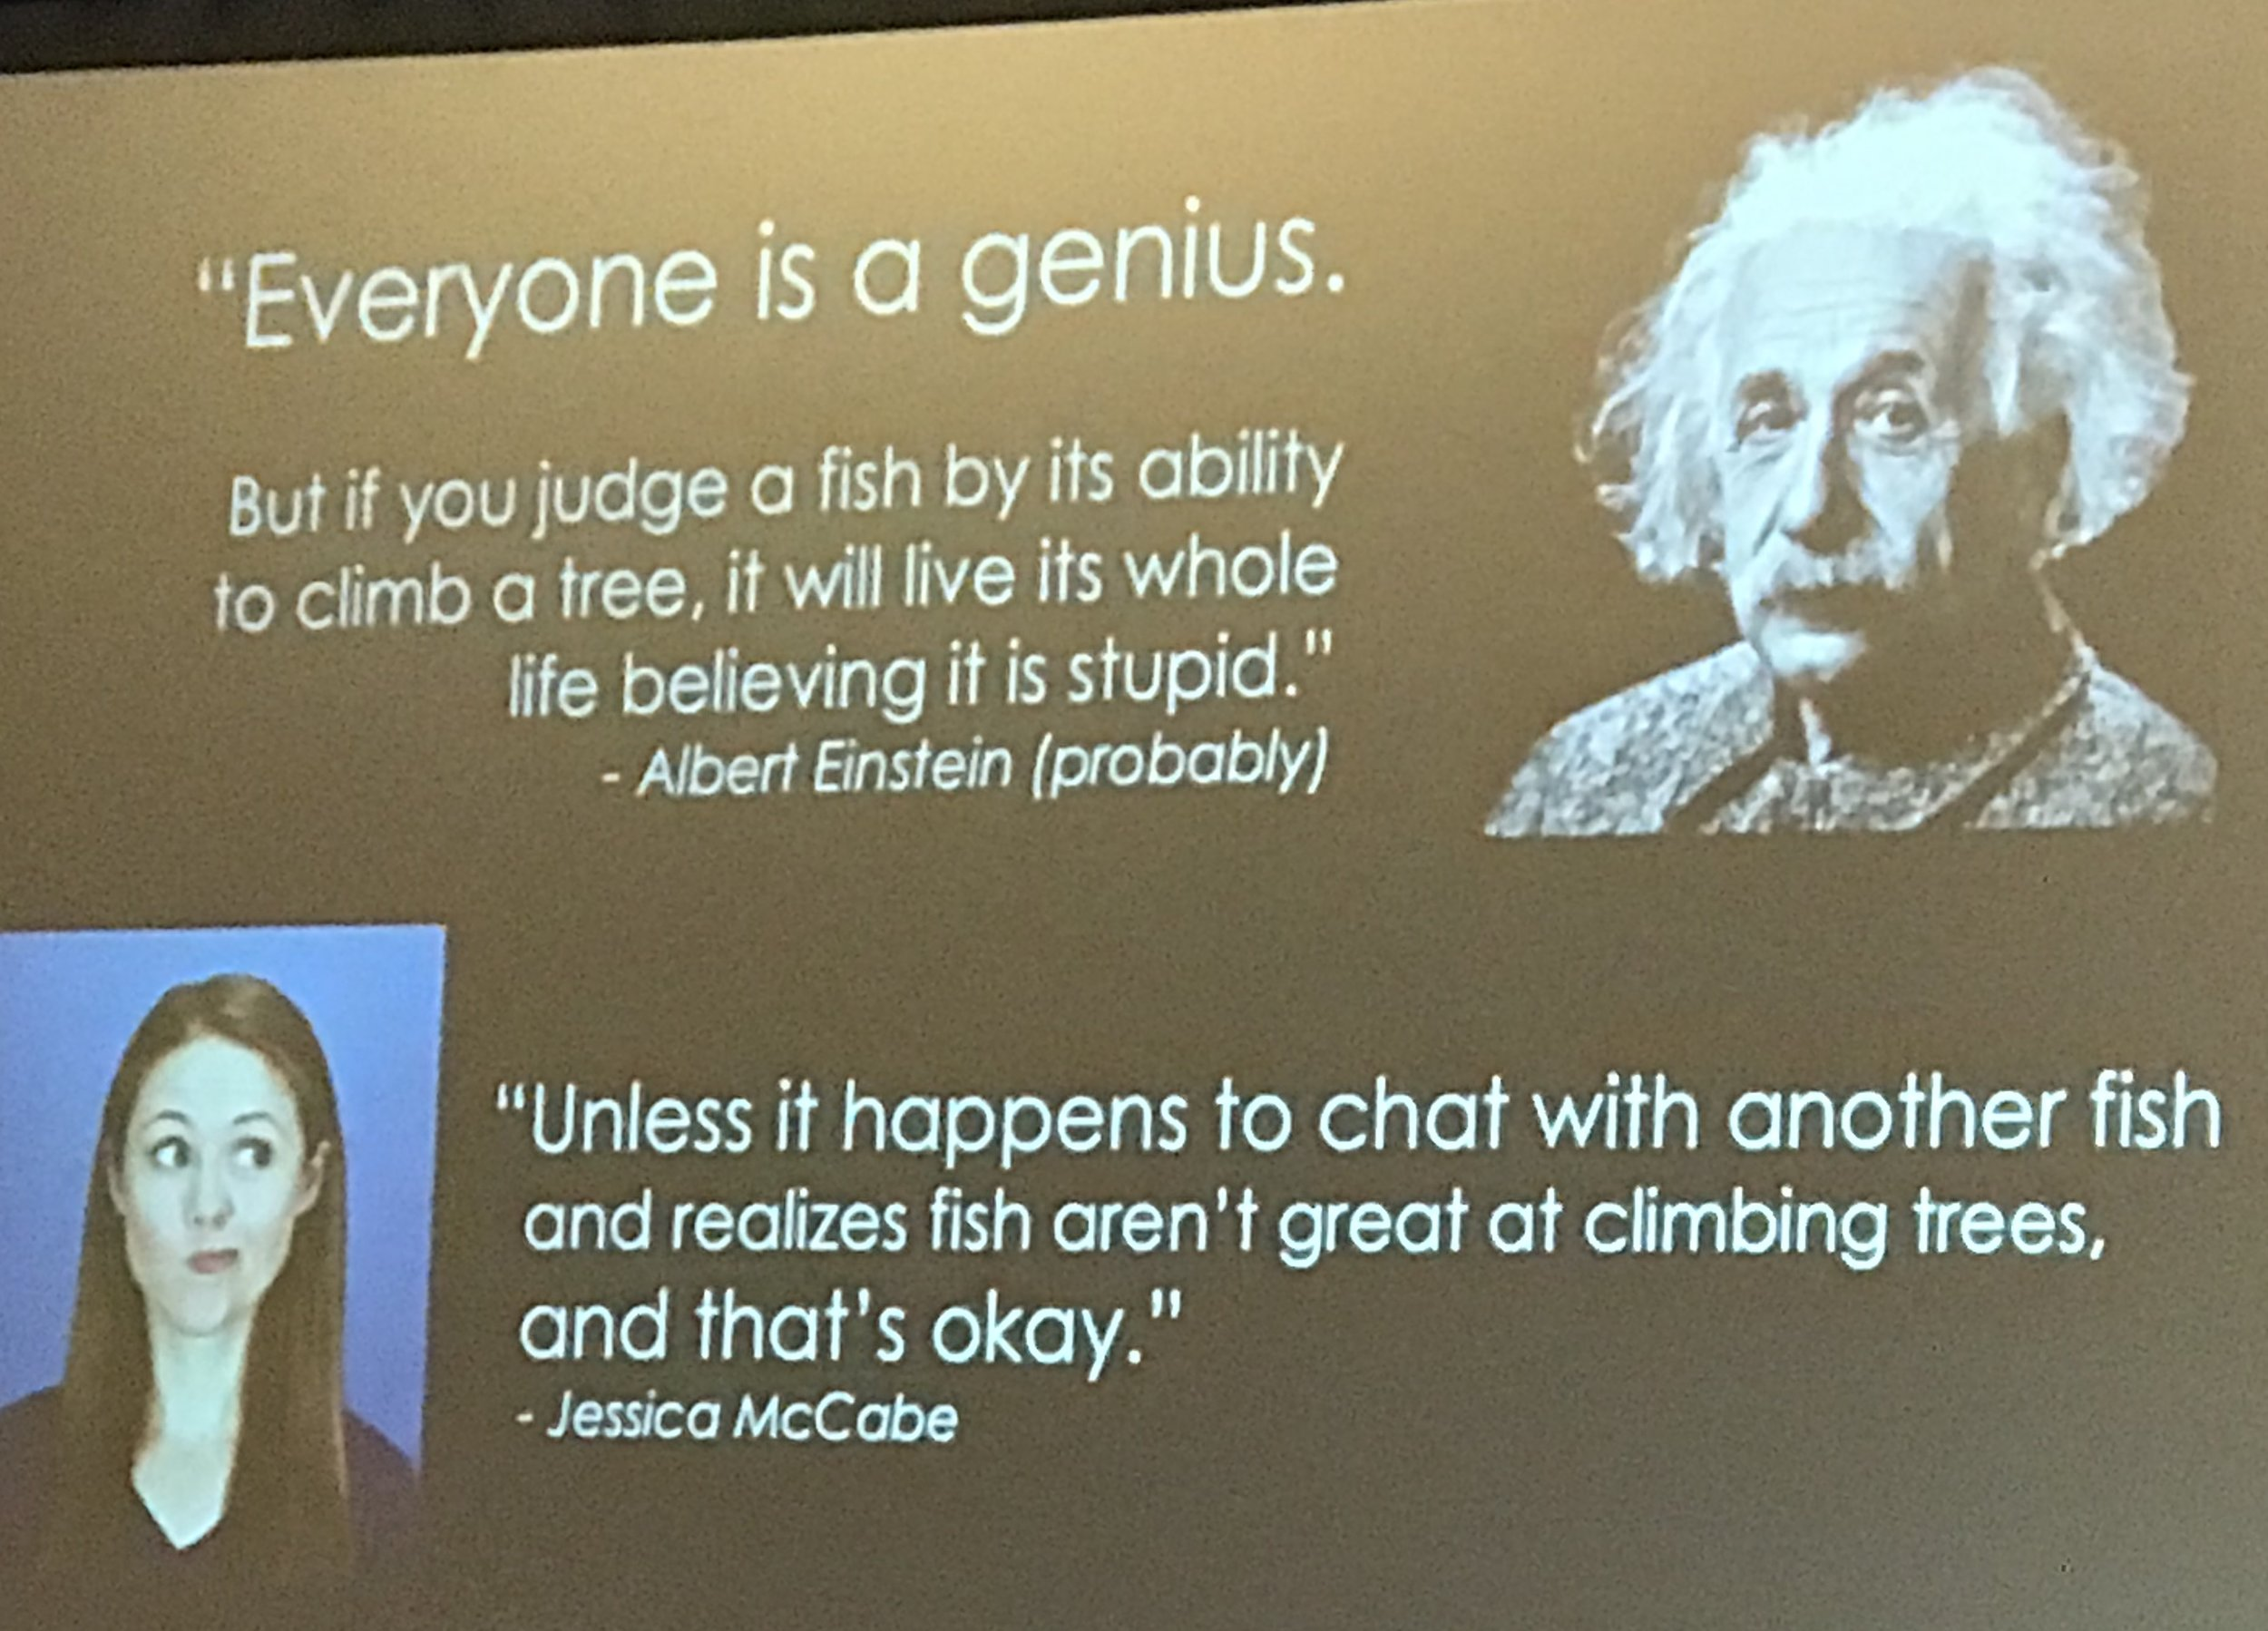 Einstein-McCabe fish quote.jpeg